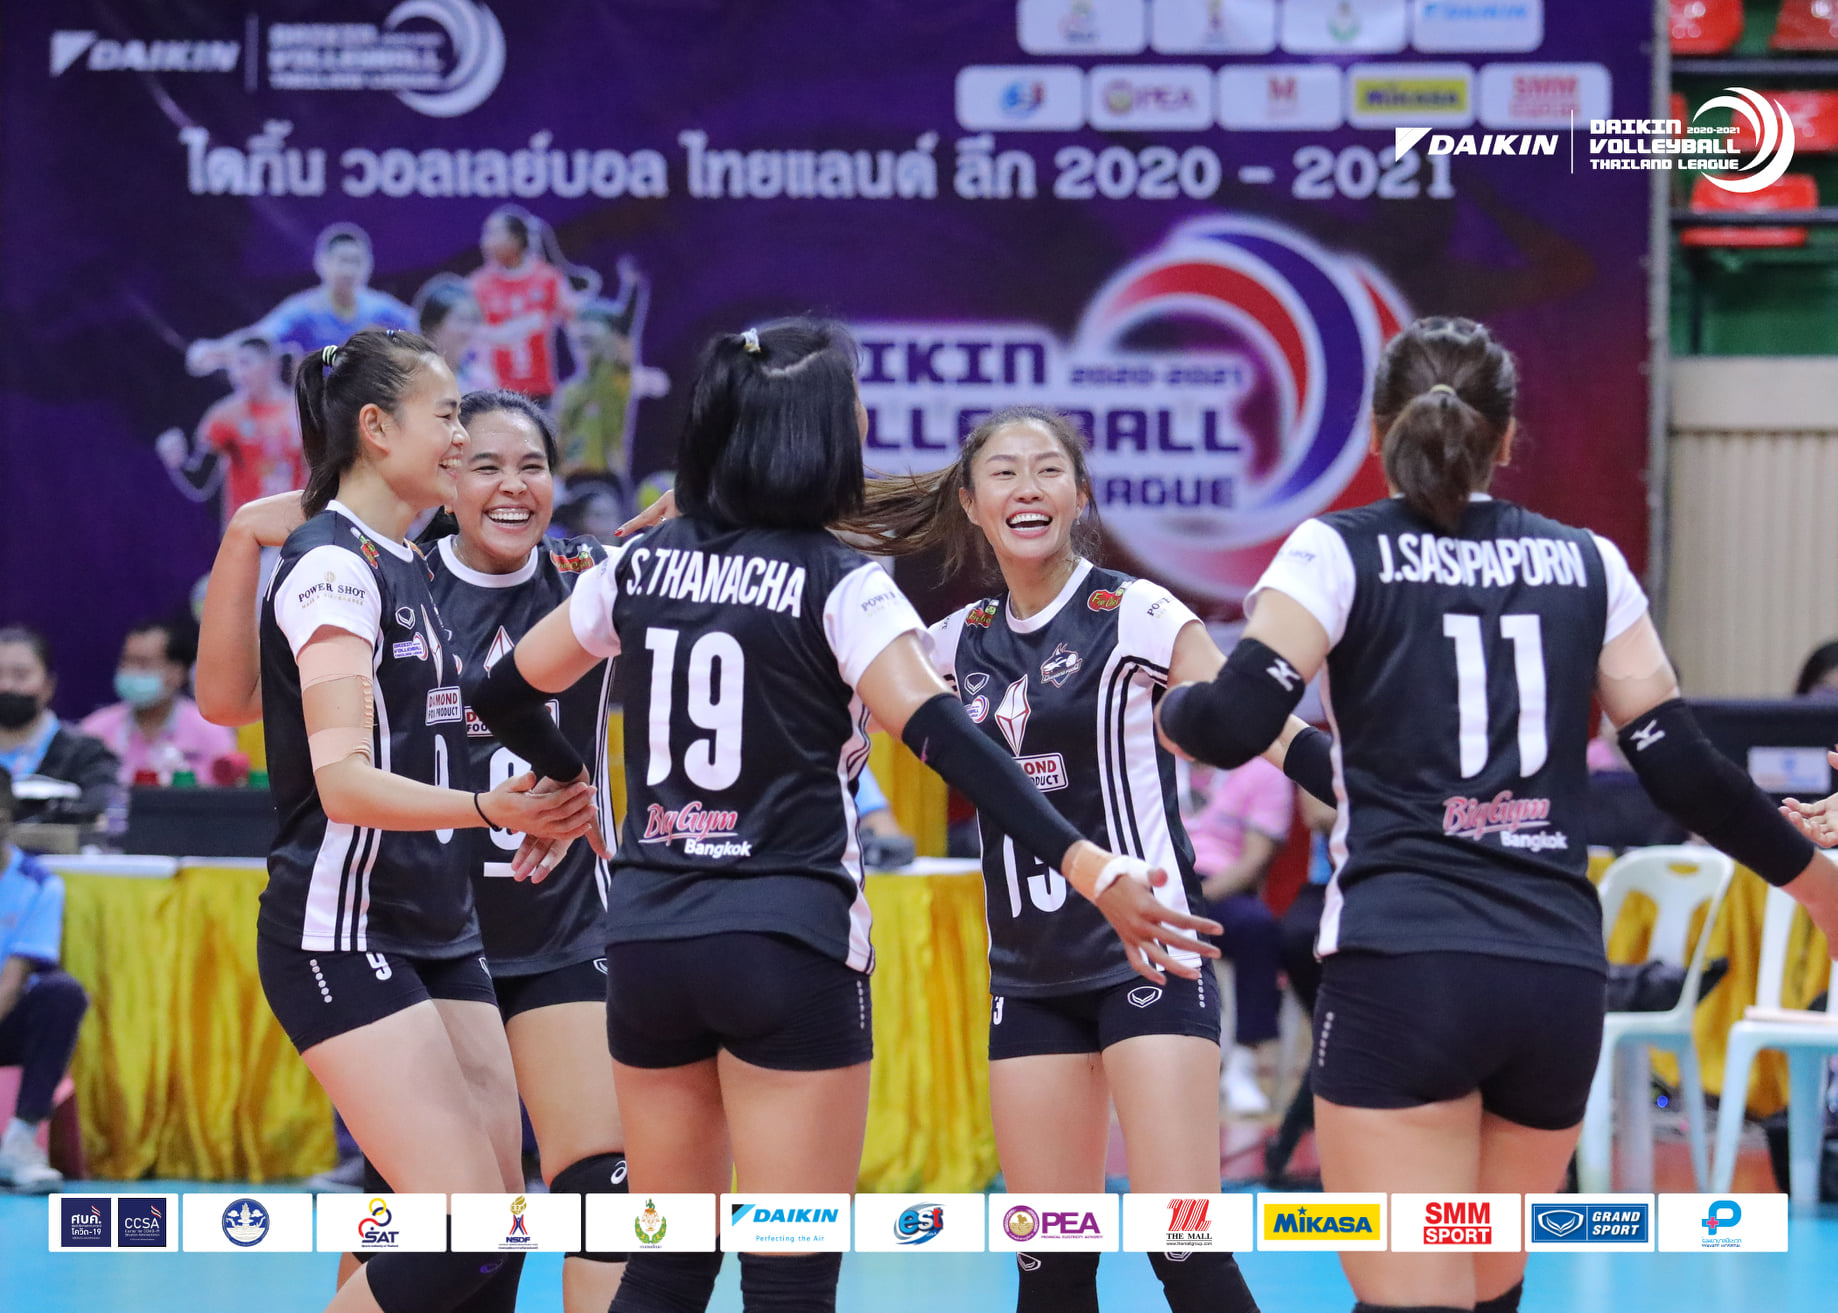 DIAMOND FOOD, NAKHON RATCHASIMA NET CRUCIAL WINS IN THAILAND VOLLEYBALL LEAGUE